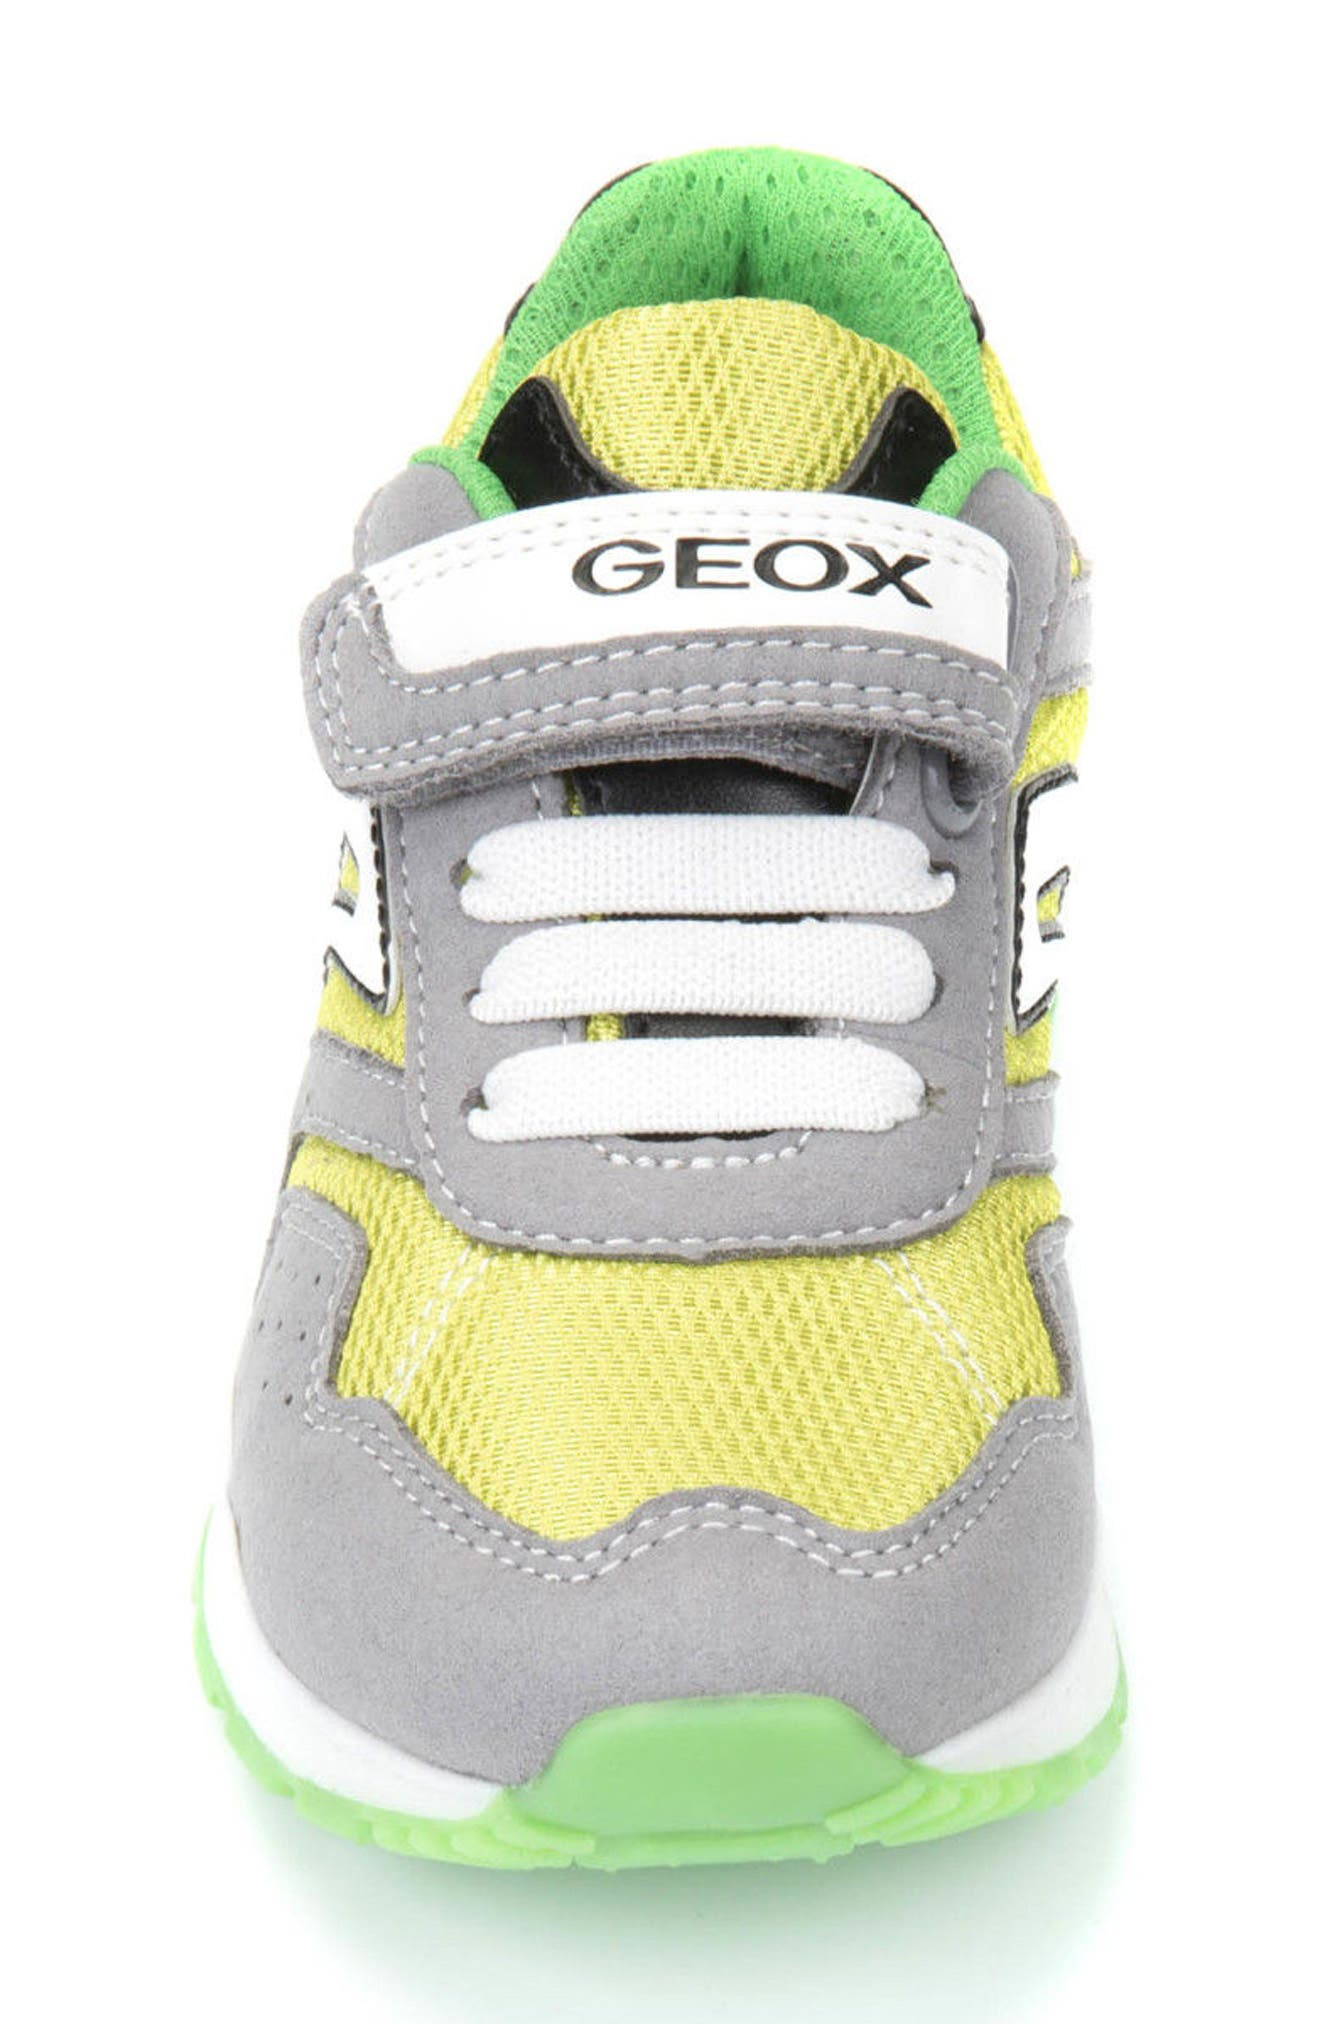 Pavel Low Top Sneaker,                             Alternate thumbnail 4, color,                             GREY/ LIME